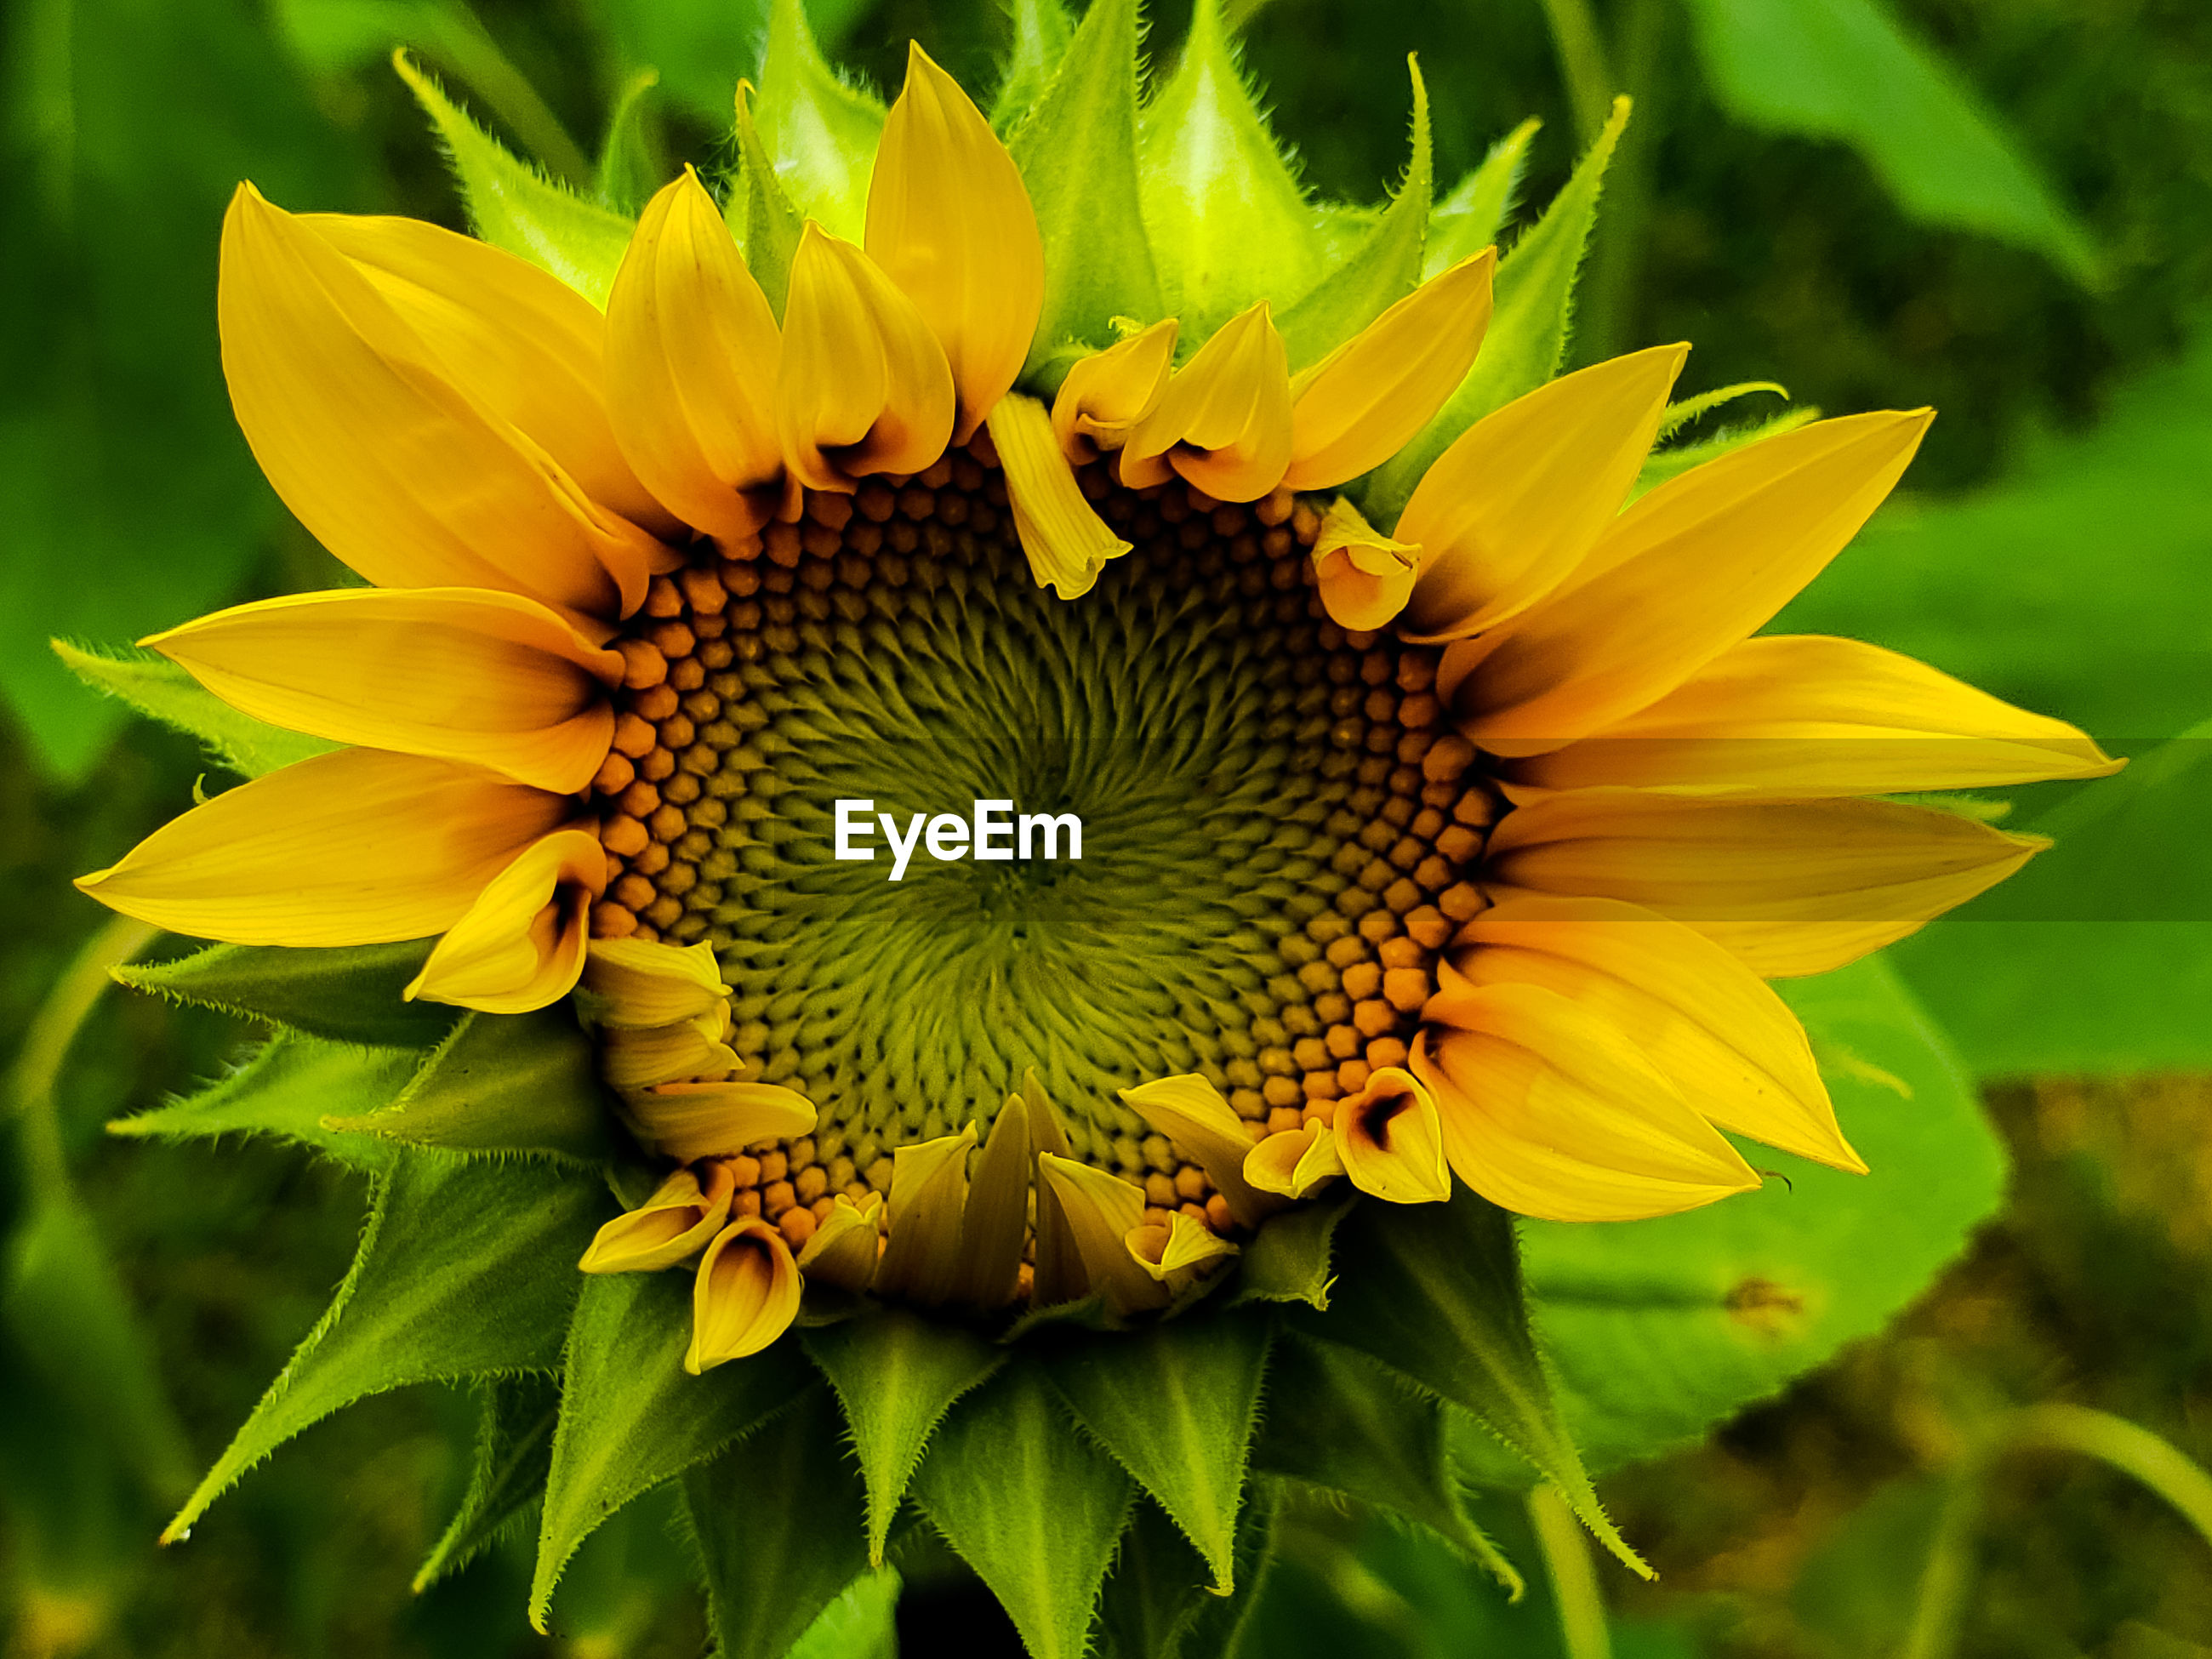 CLOSE-UP OF SUNFLOWER IN BLOOM